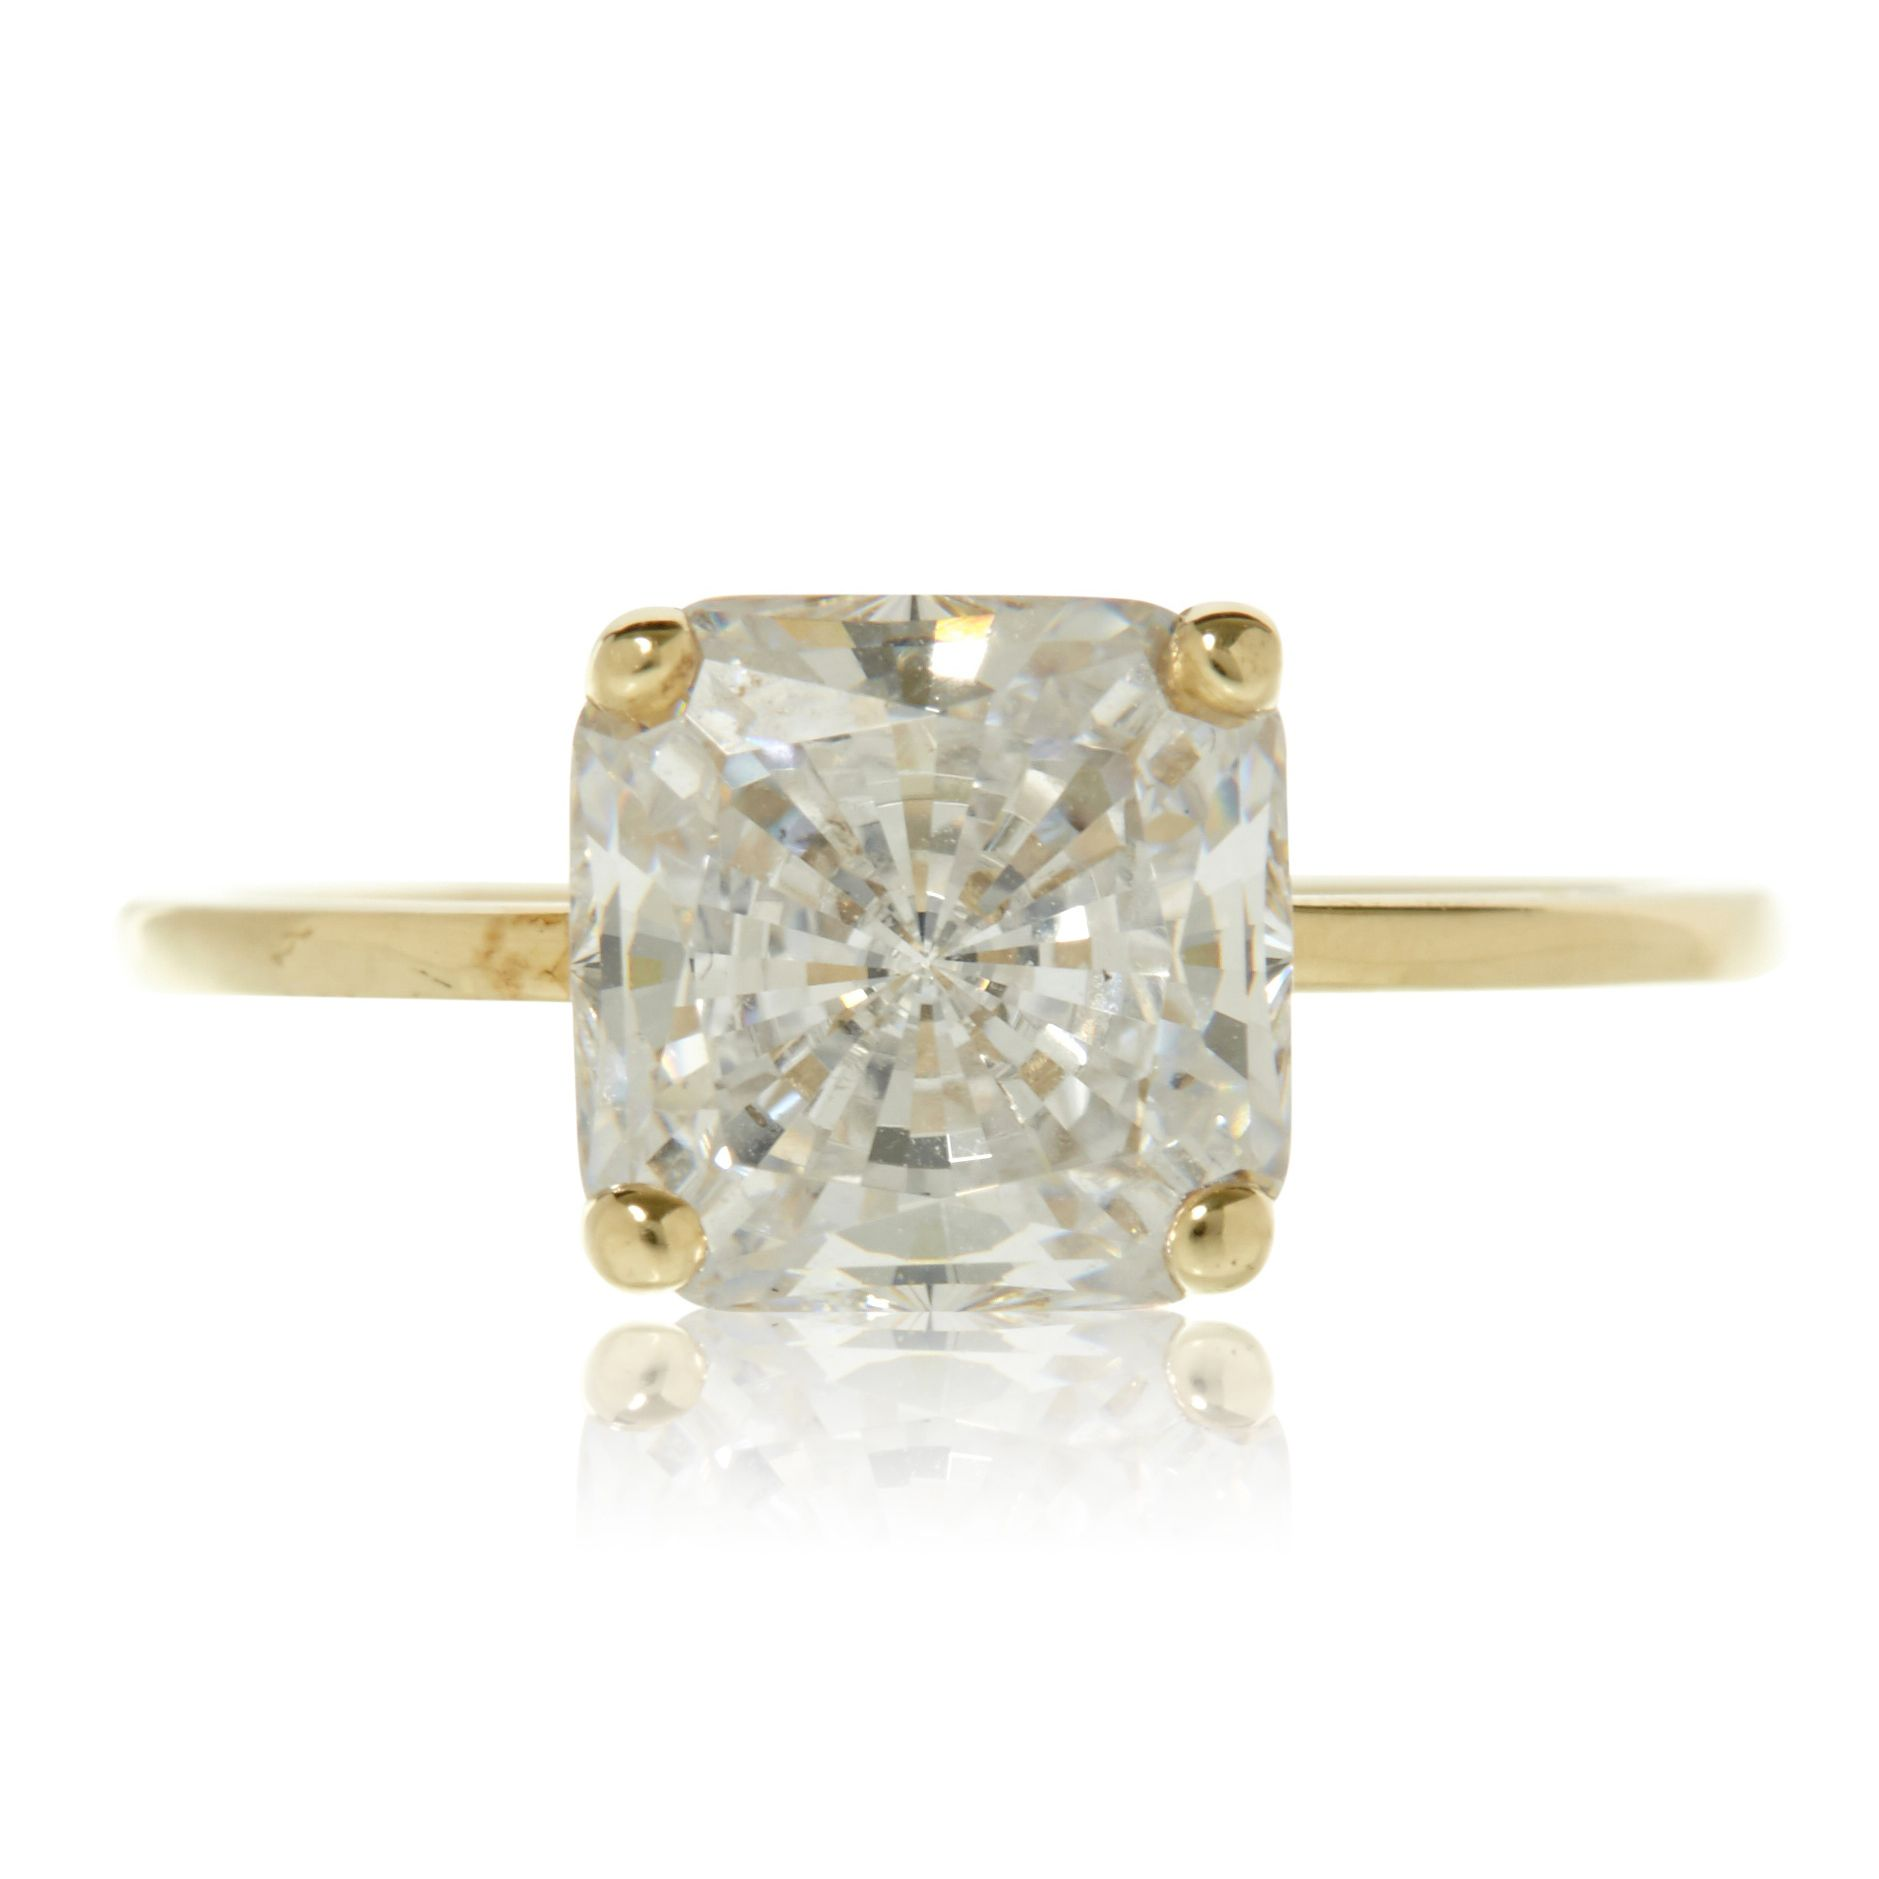 Square Diamond engagement ring with yellow gold band on a white background.